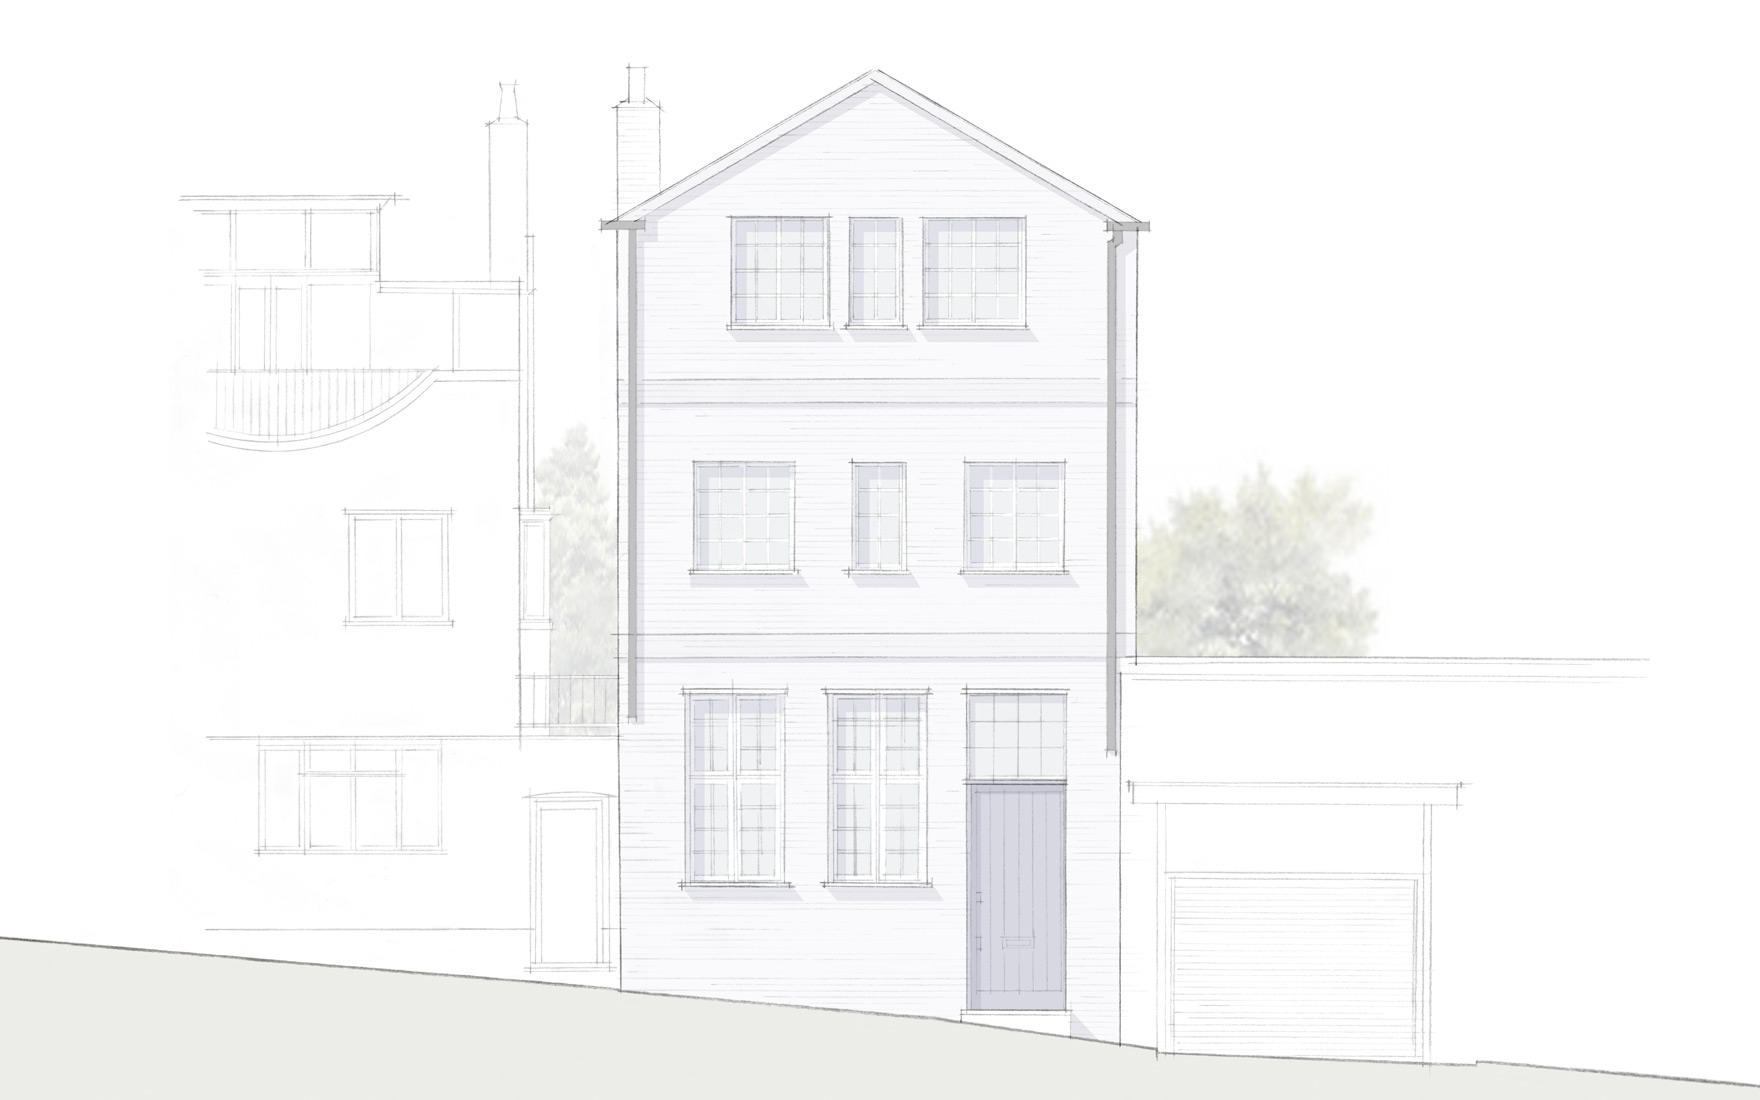 Notting Hill sketch showing the front elevation